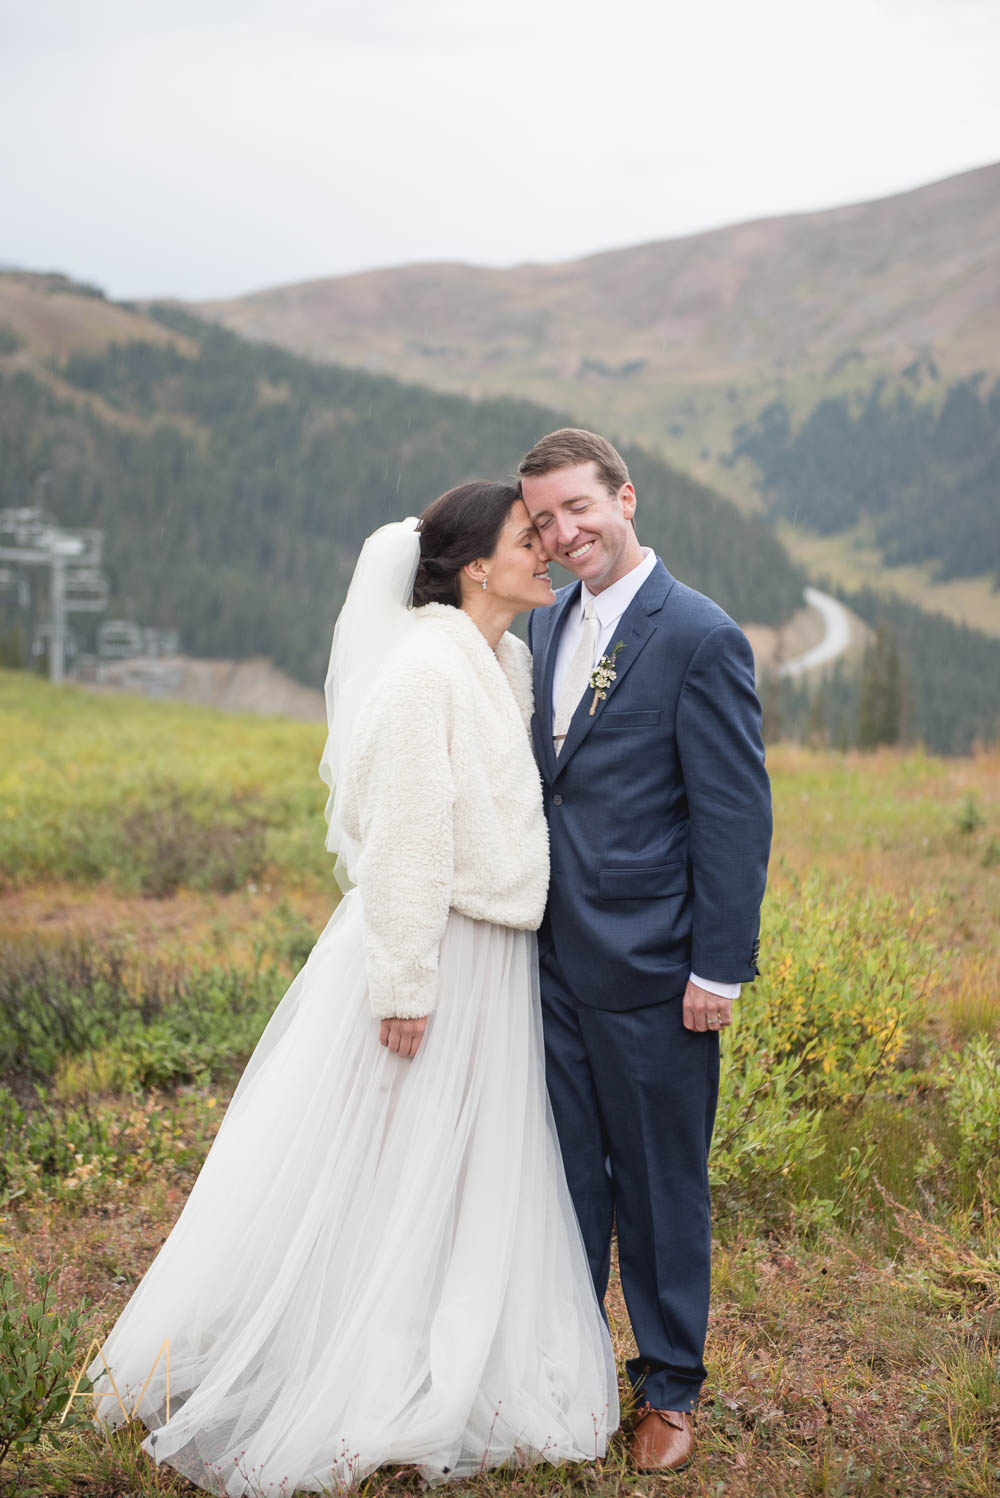 AshleighMillerWeddings-JennyAllen-ArapahoeBasin-Keystone-Colorado-3850.jpg